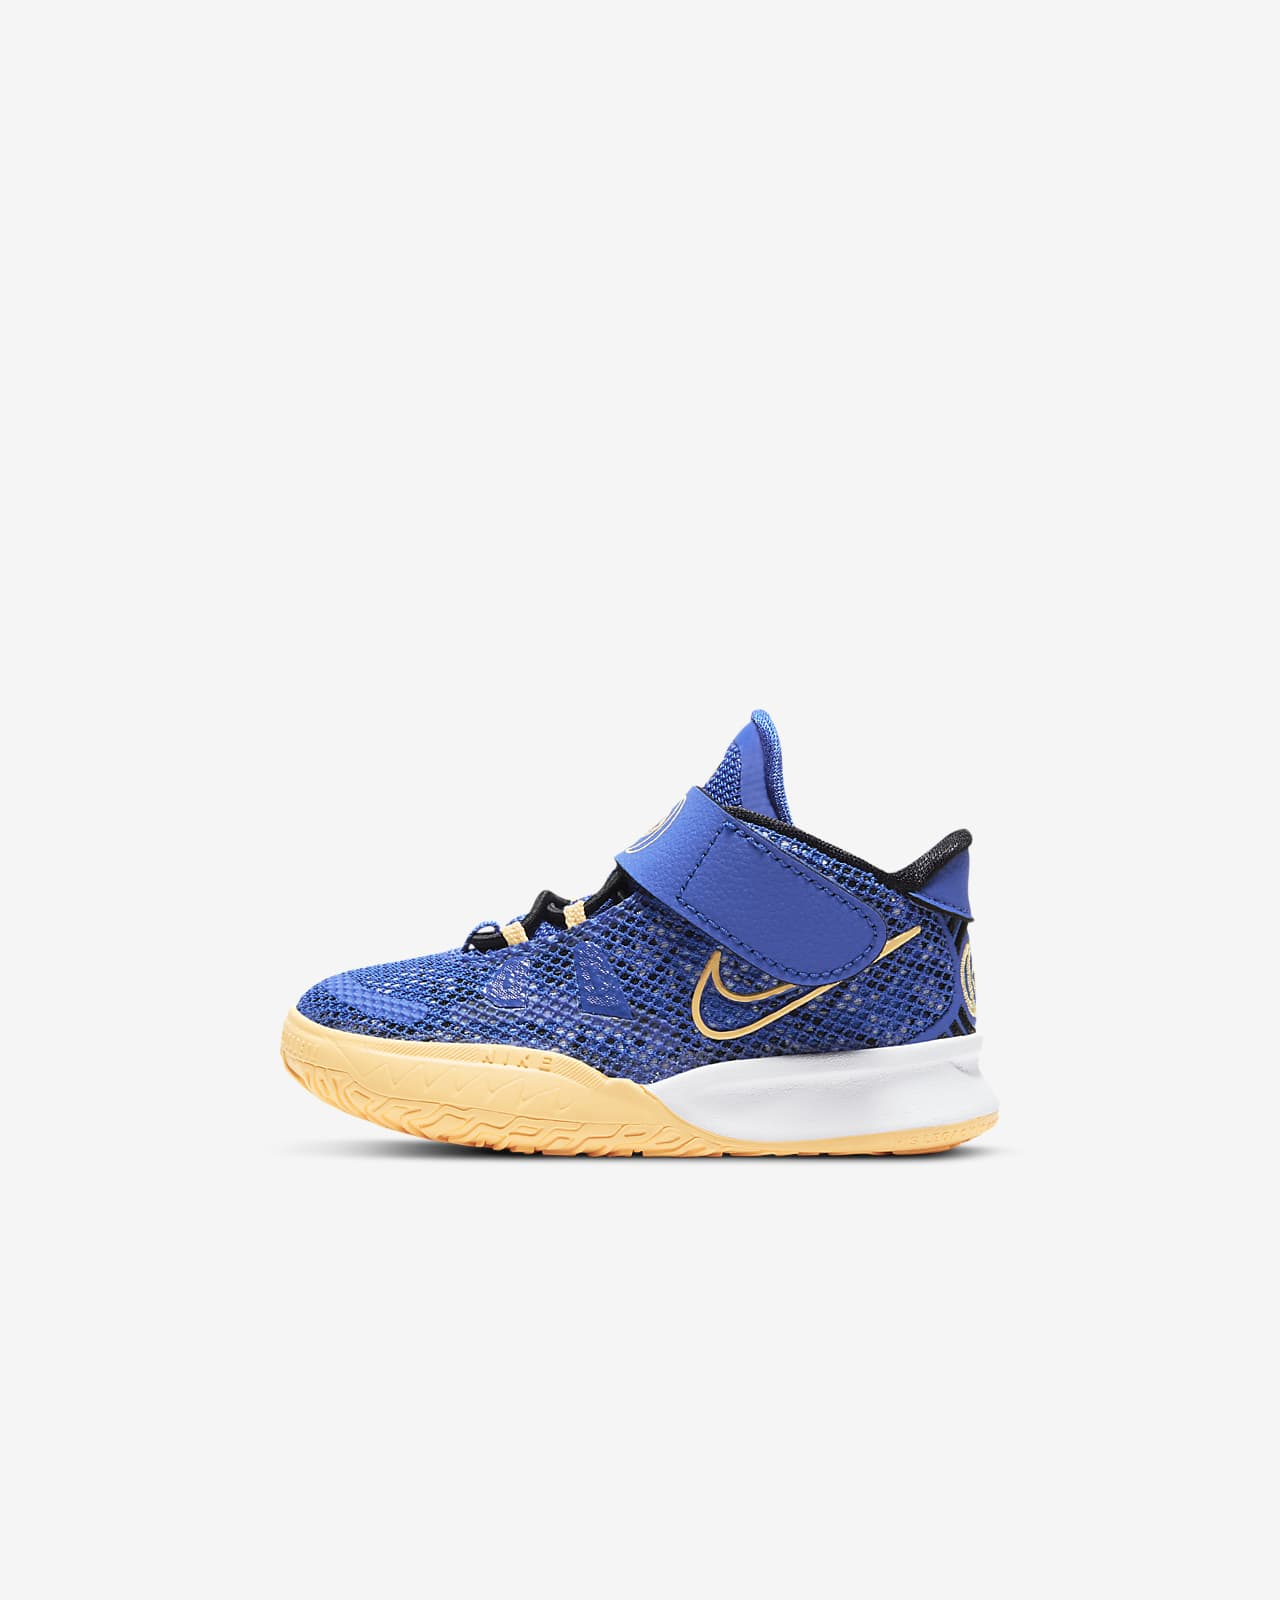 Kyrie 7 Baby & Toddler Shoe